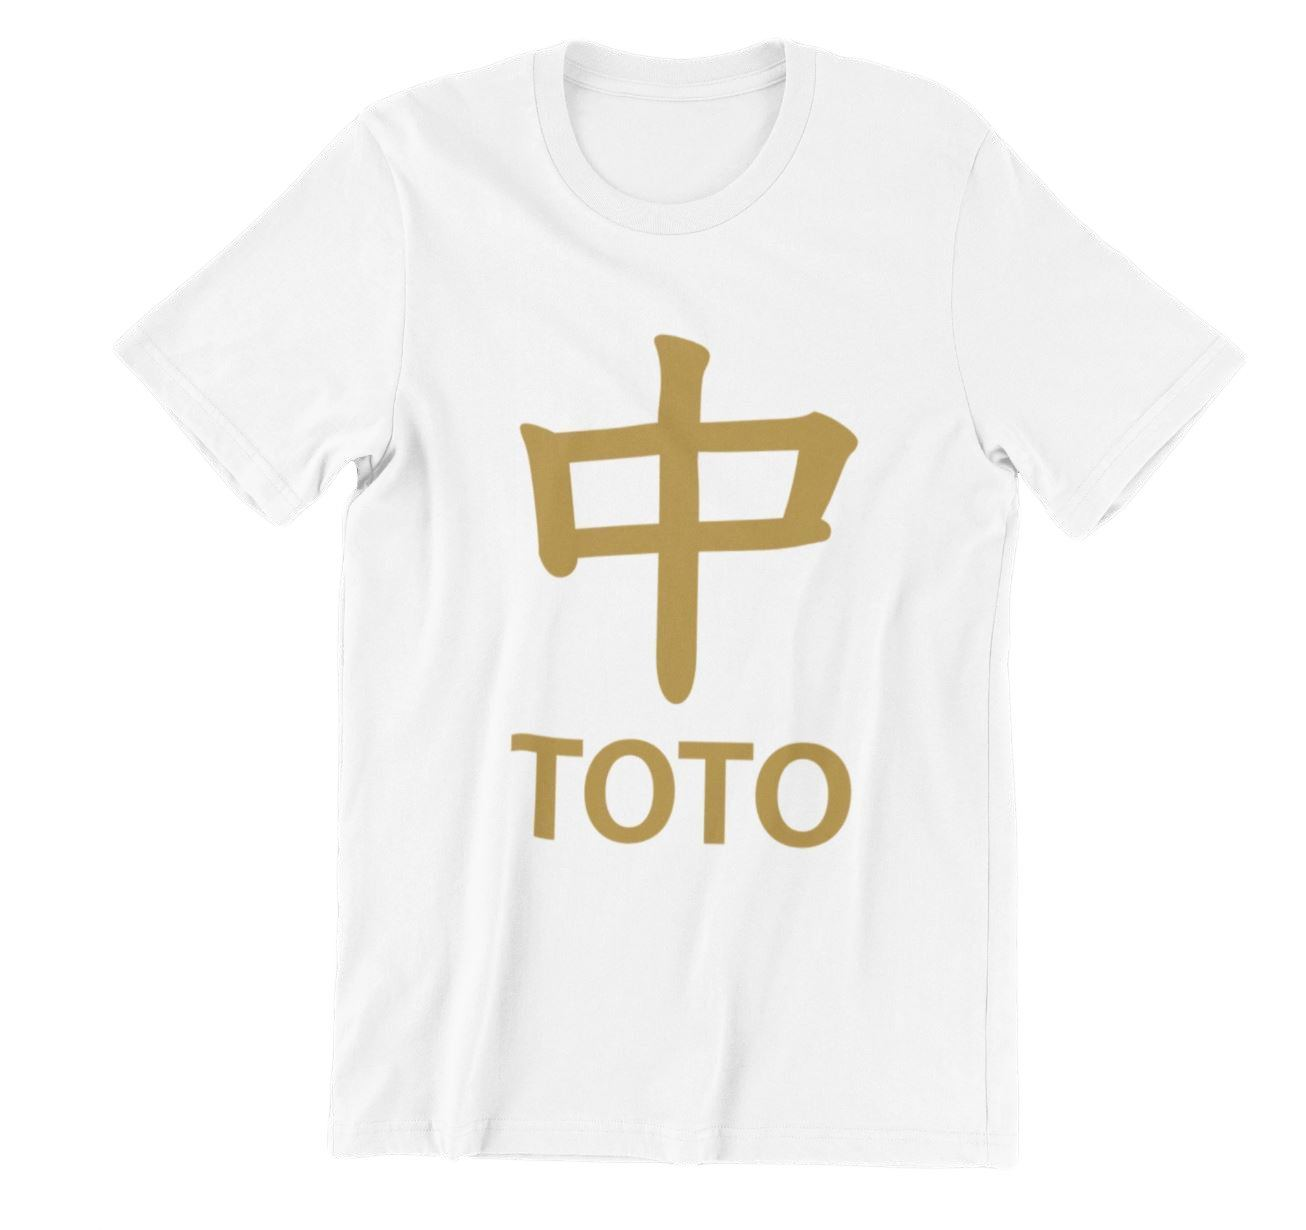 Strike 4D TOTO CNY Edition T-shirt (Kids) (Pre-Order) - Local Kids' Clothing - Wet Tee Shirt - Naiise